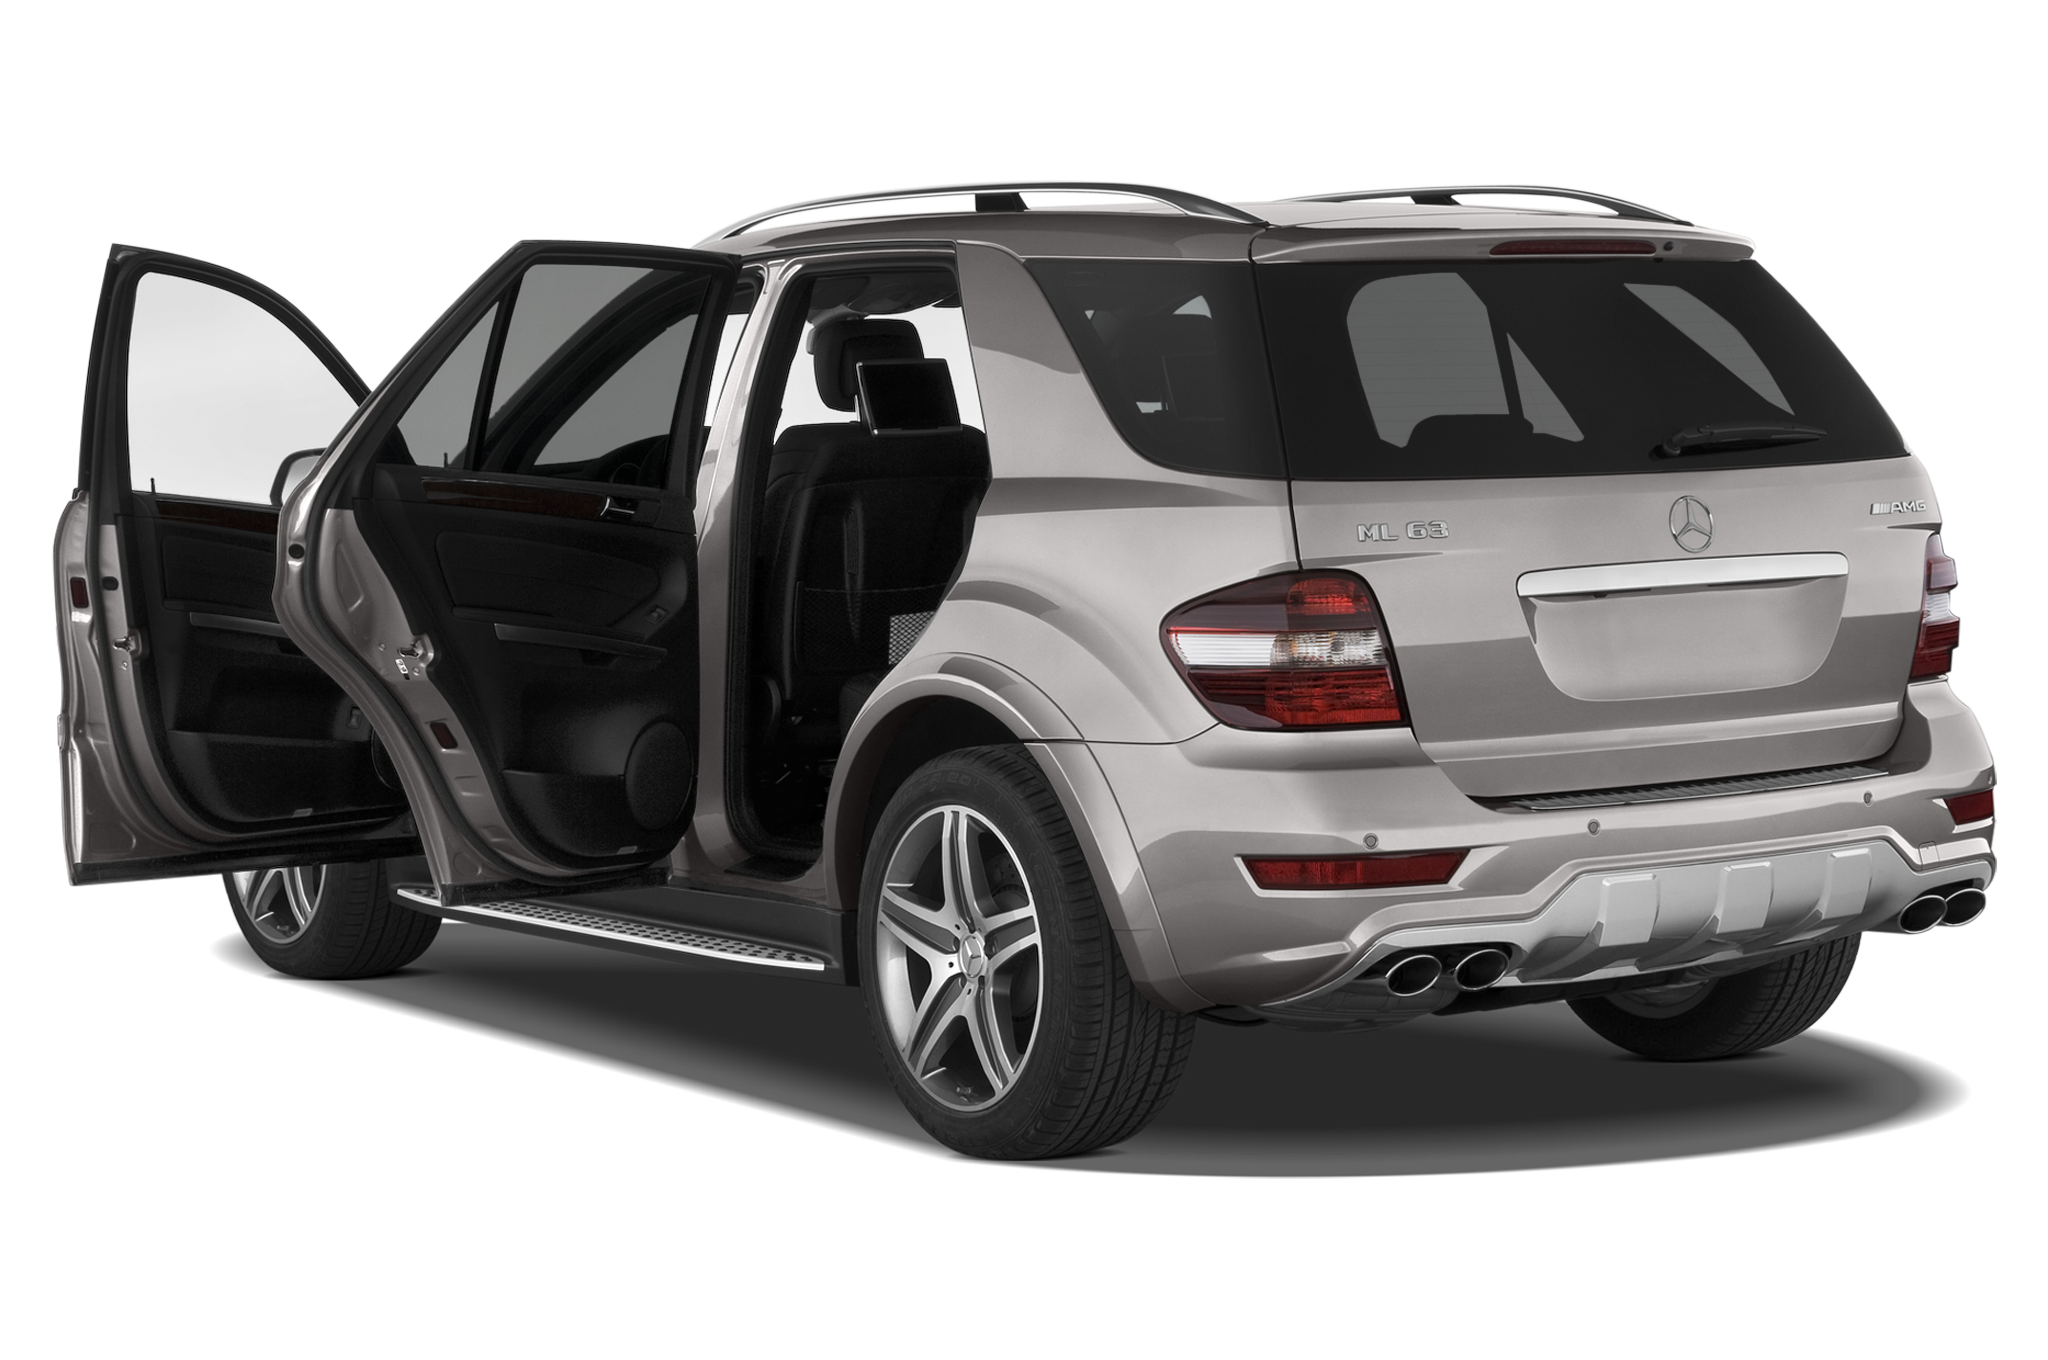 2011 mercedes benz ml63 amg editor 39 s notebook for Mercedes benz amg ml63